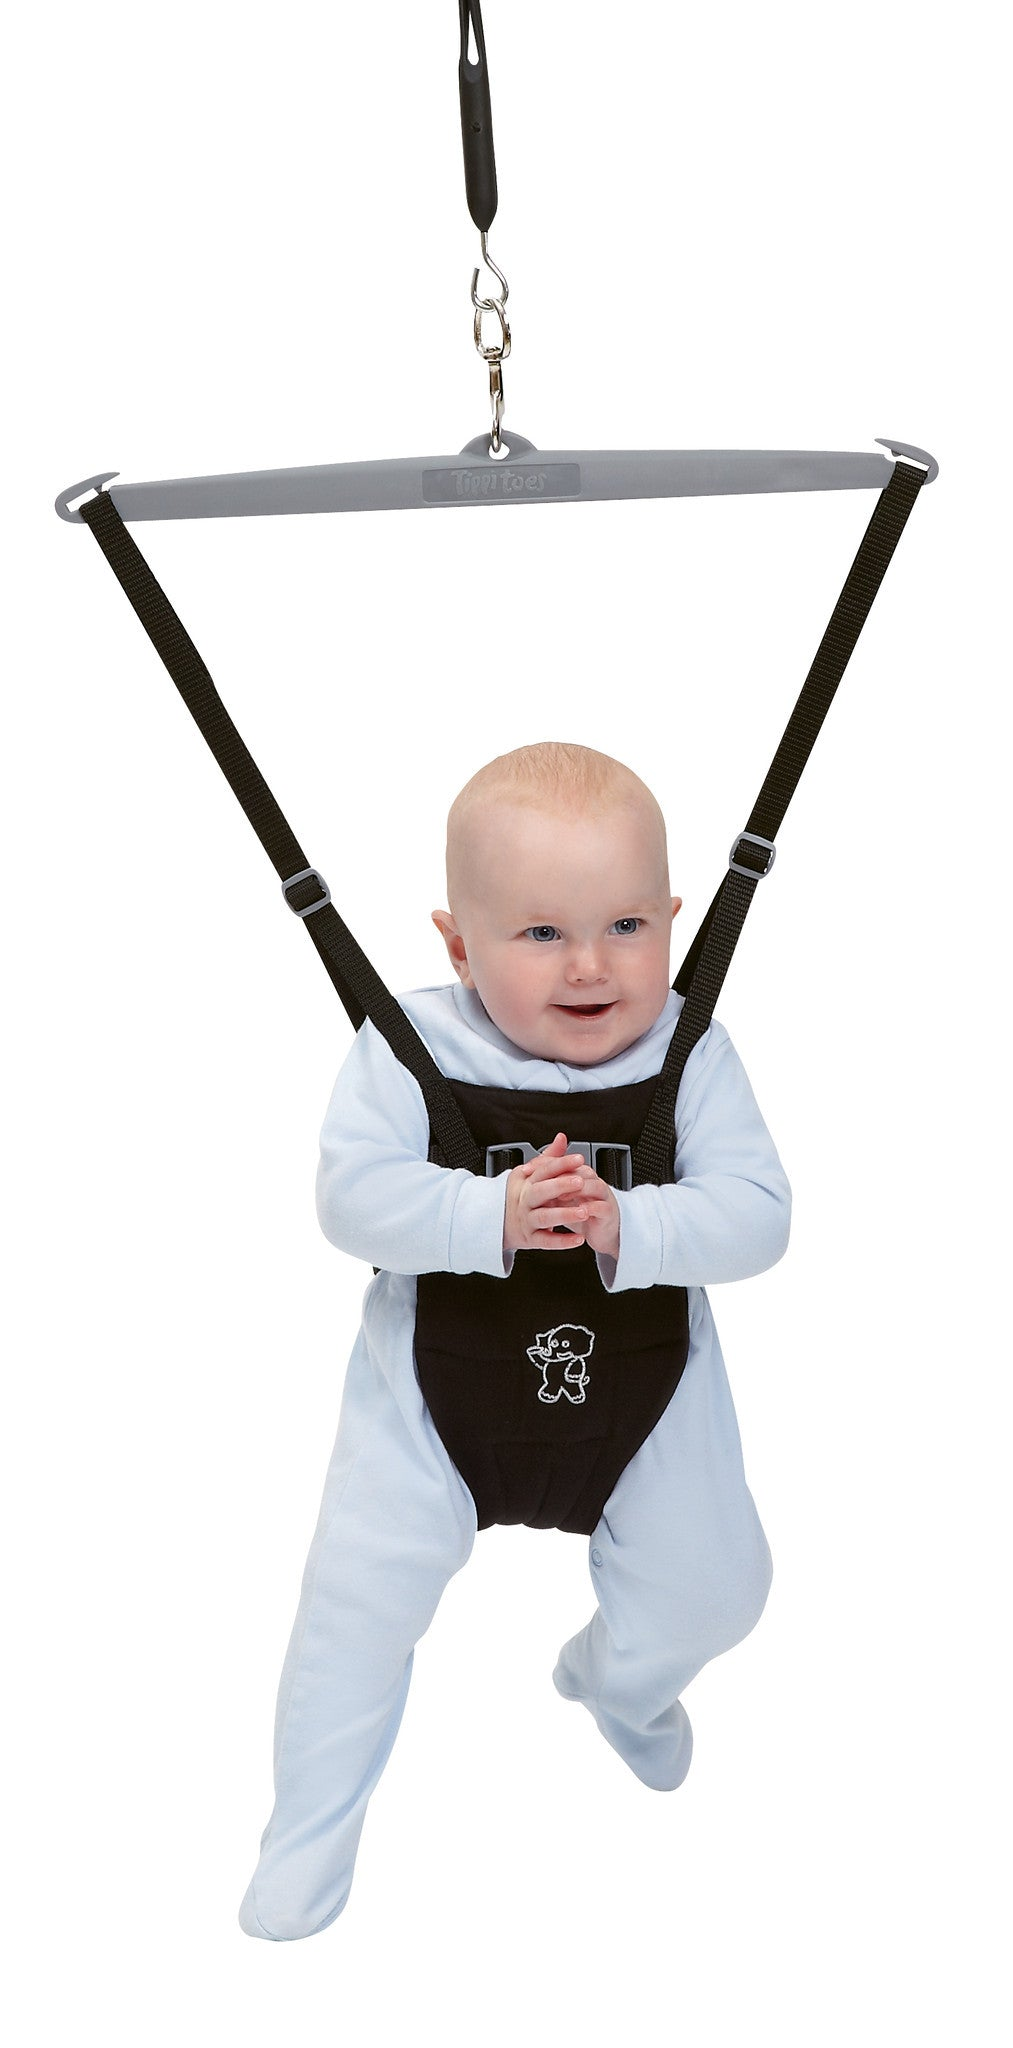 Tippitoes Baby Bouncer - Black - Tippitoes Development